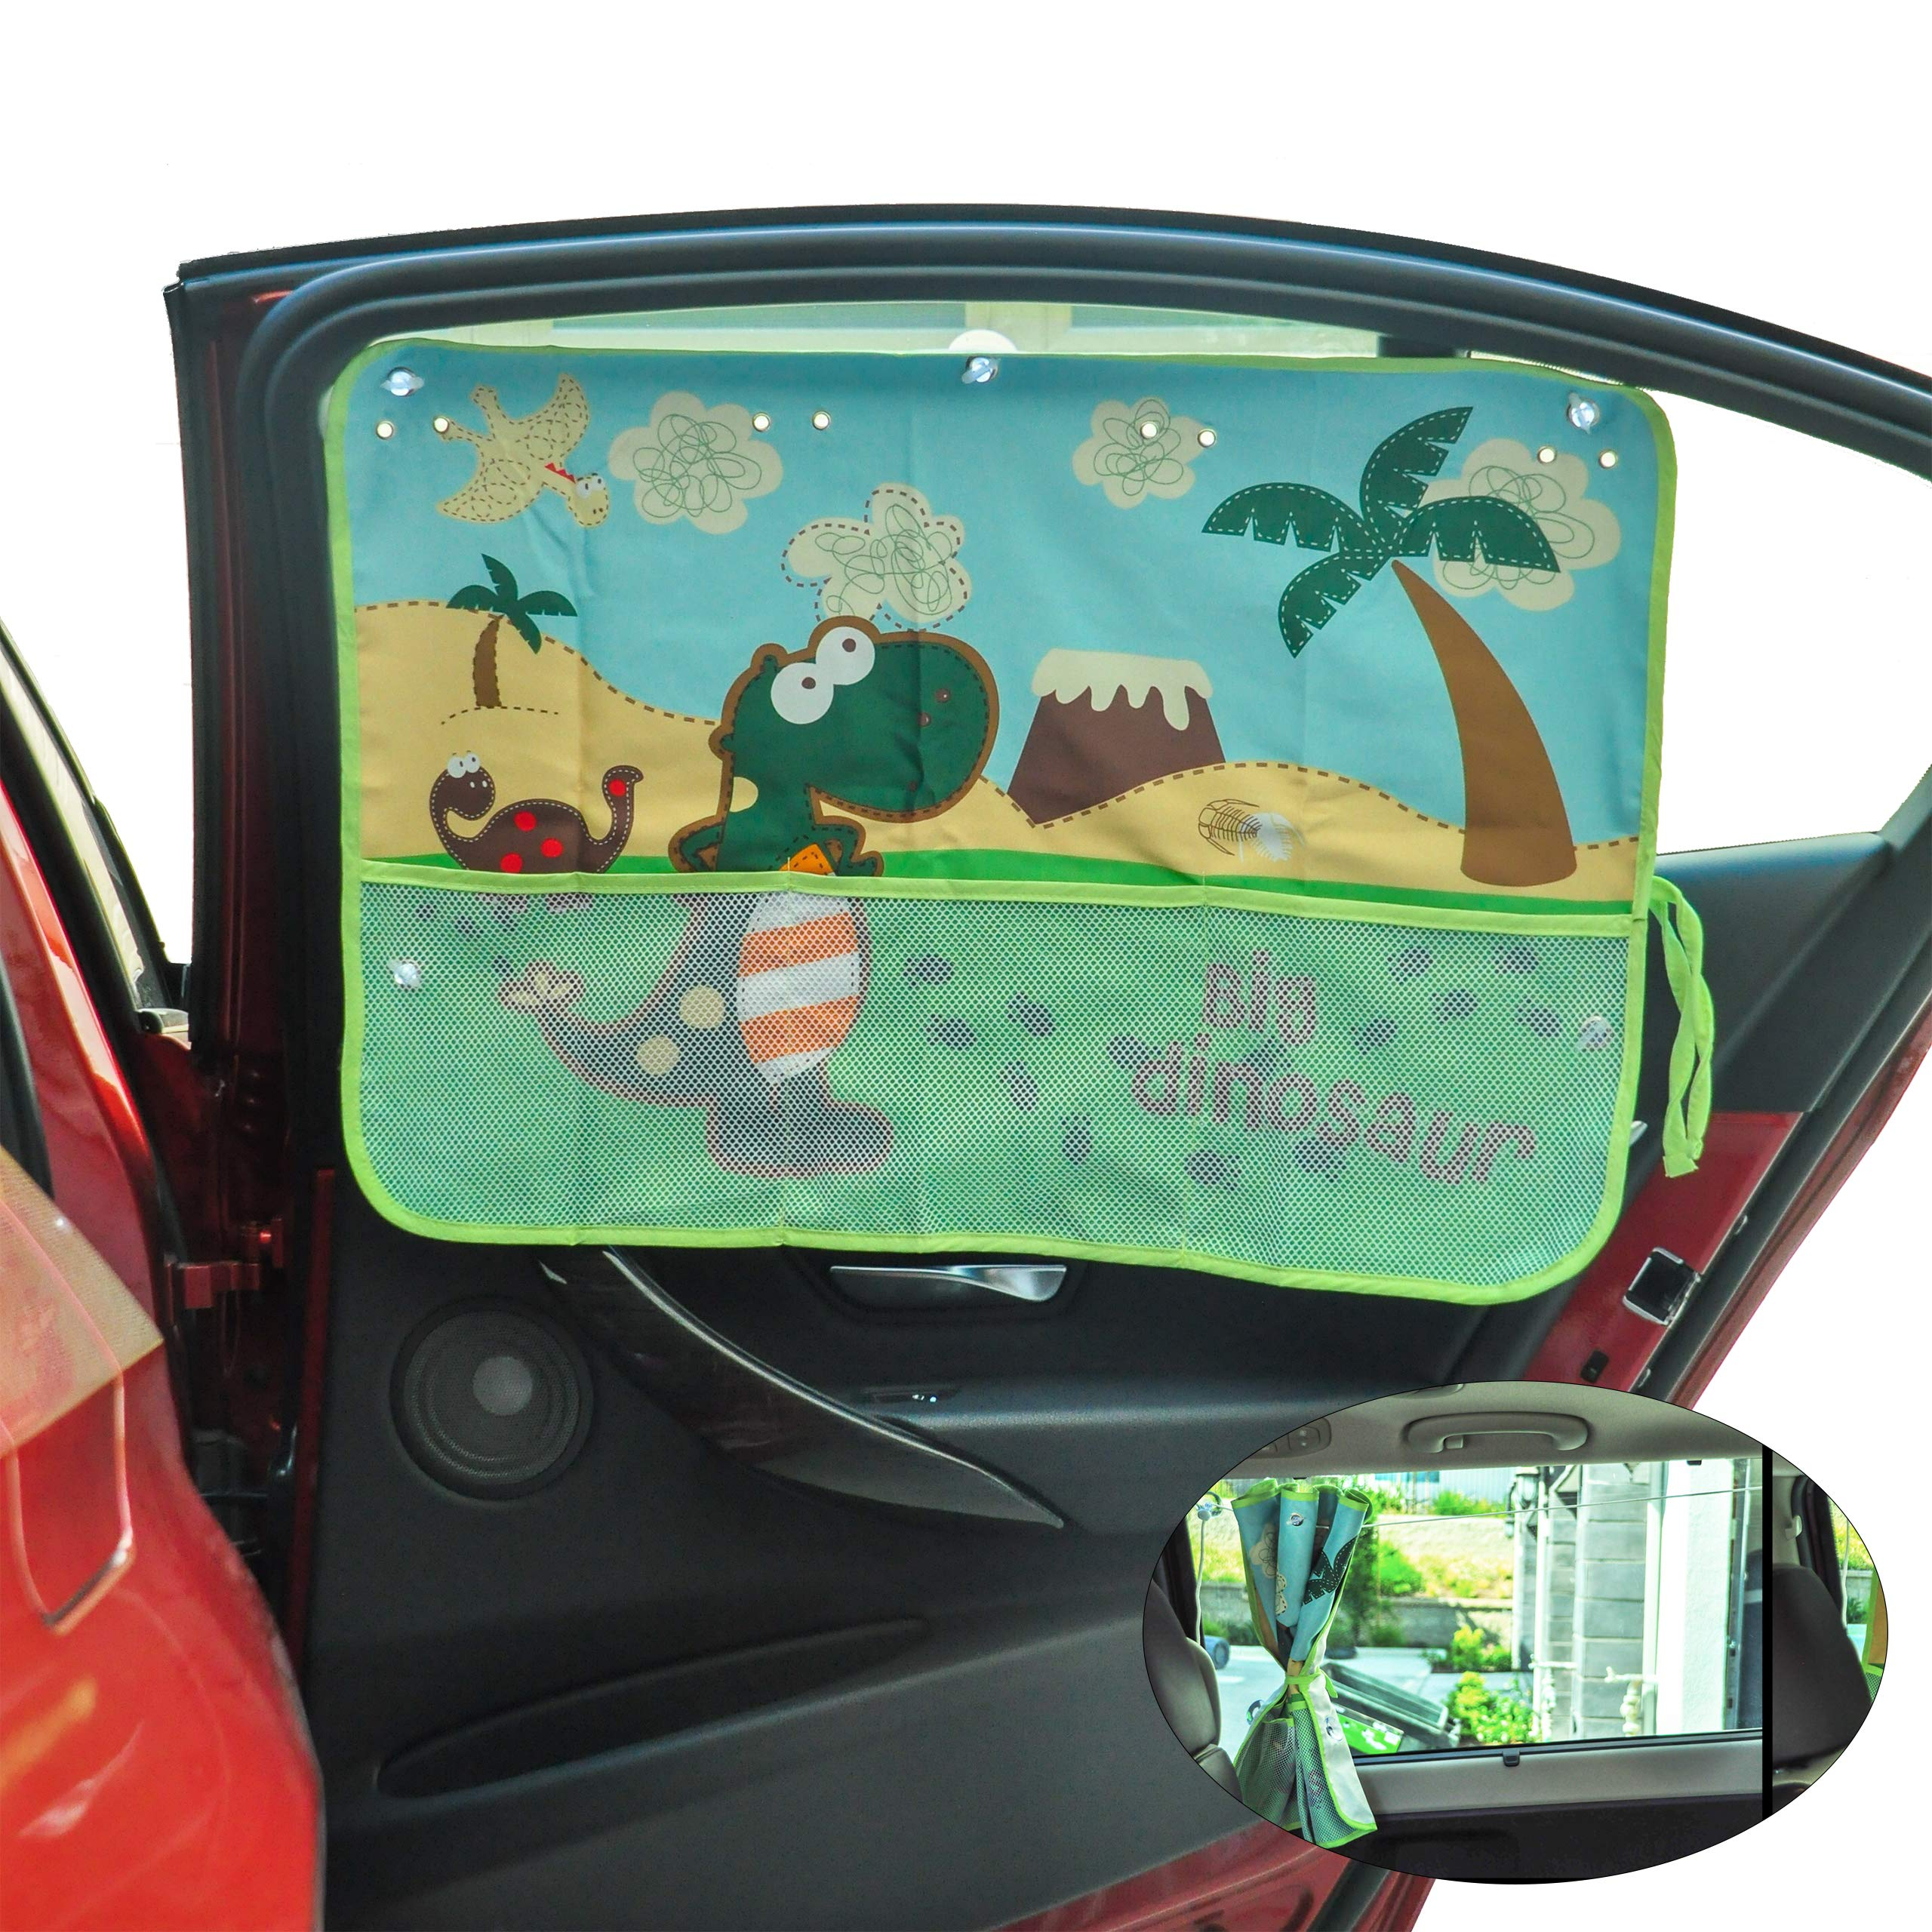 AutoPal - Car Window Sun Shades for Baby with Practical Pockets | Protect Your Kids from UV | Fit Most Cars | Easy Install (Big Dinosaur) by Auto Mate